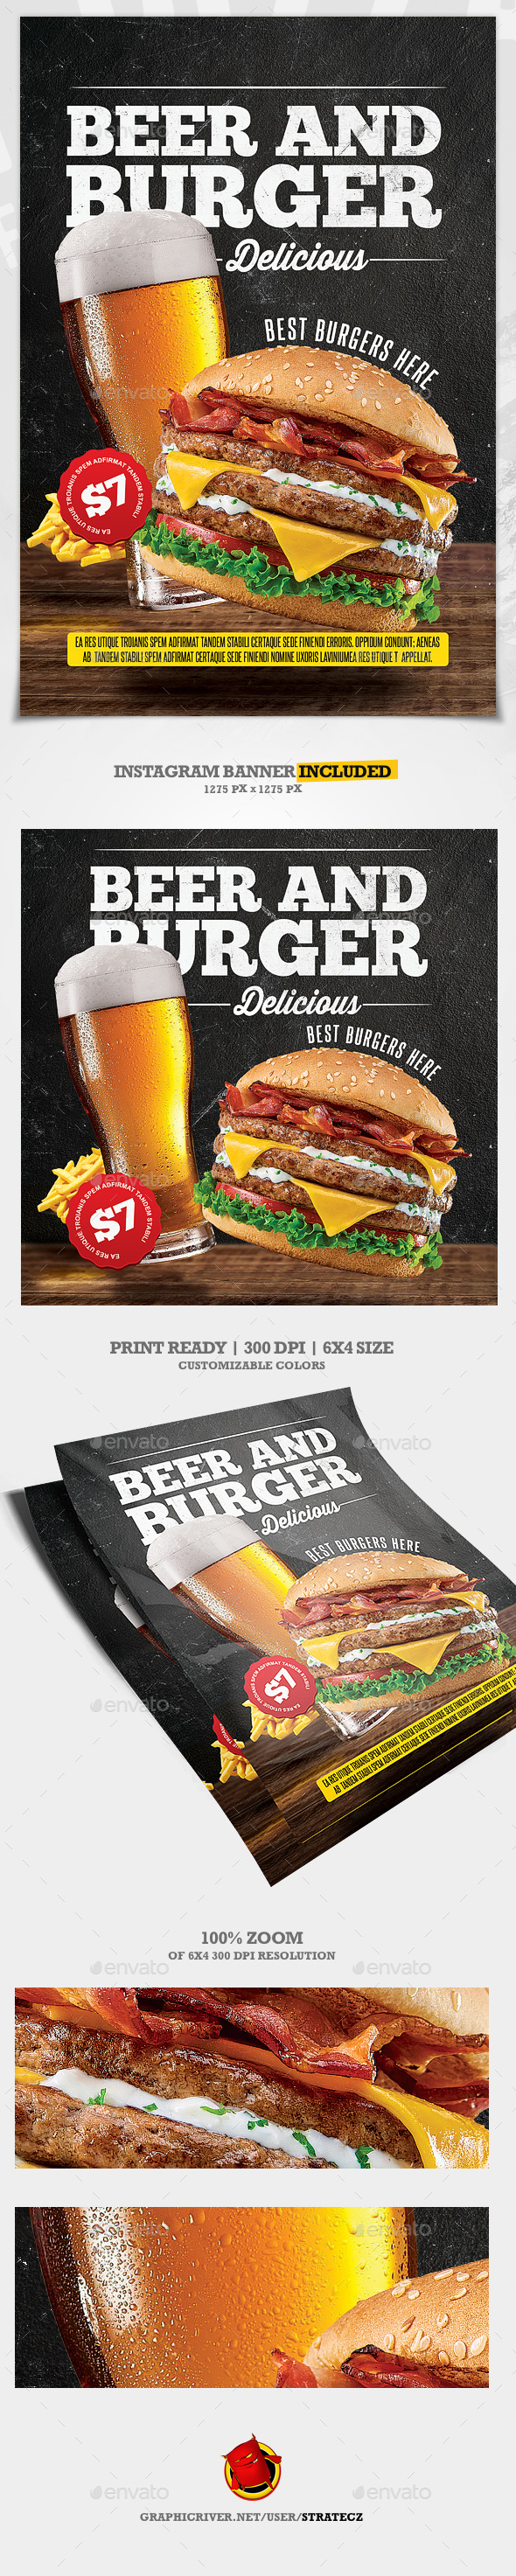 Burger Food Flyer / Burger House - Print Templates